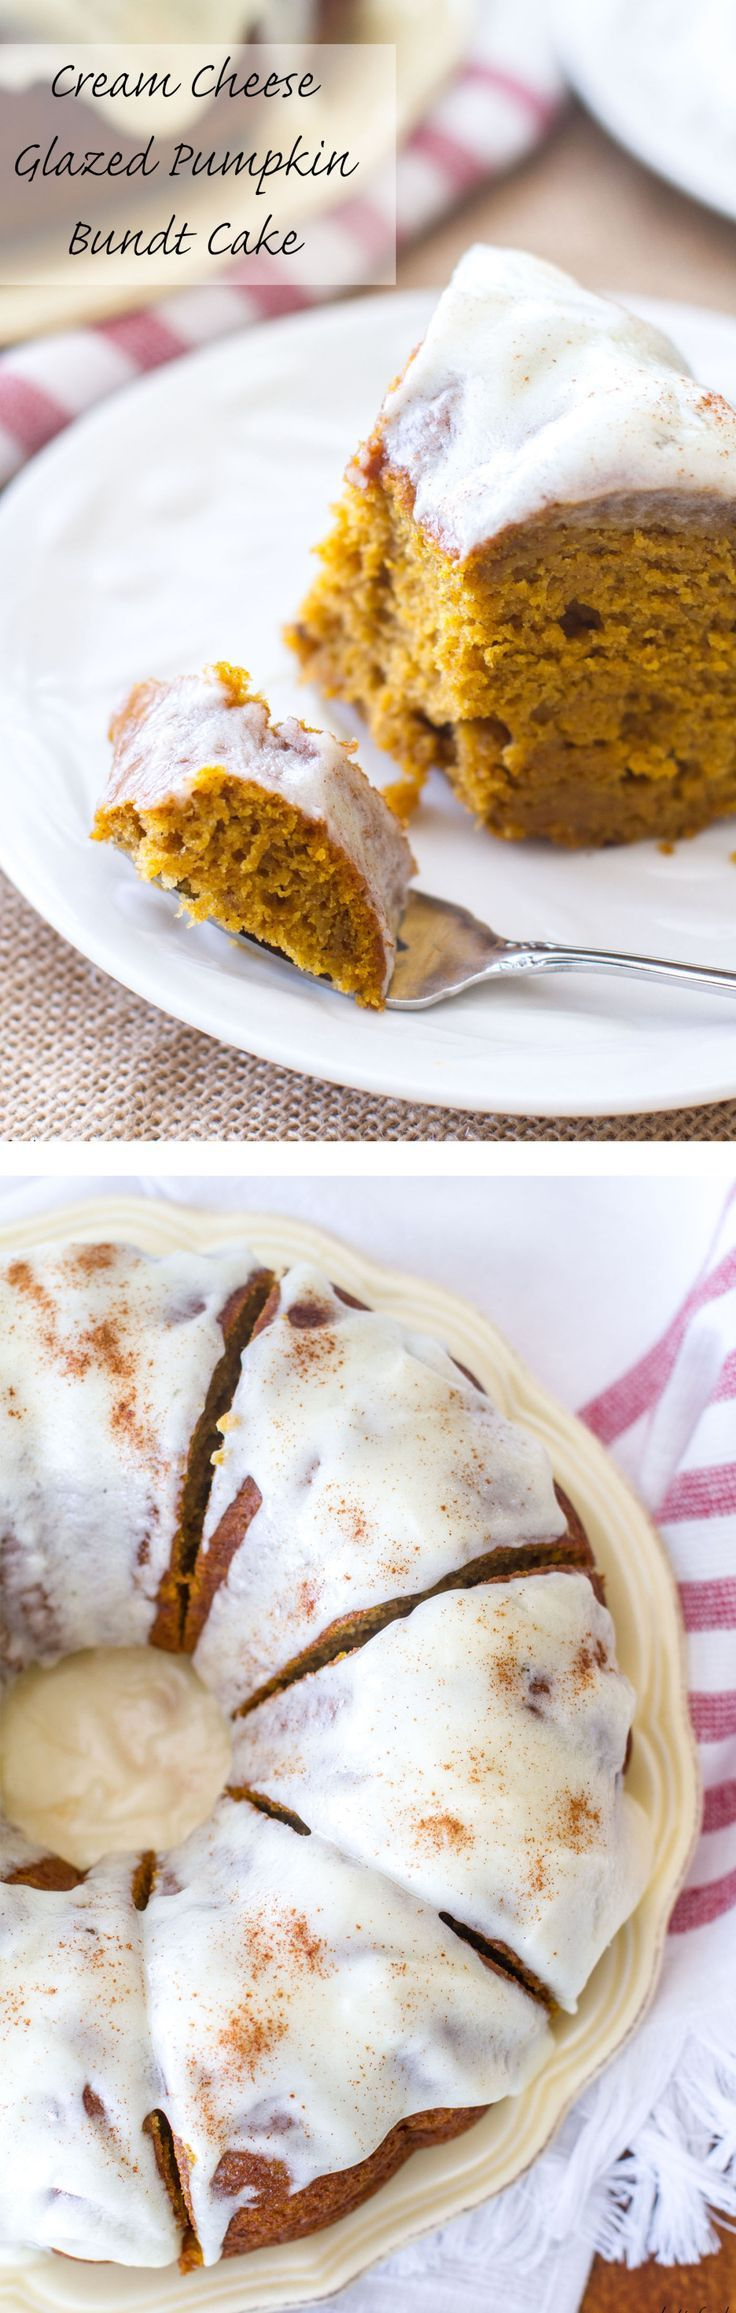 This classic fall dessert is full of pumpkin flavor, cinnamon spice, and rich cream cheese! It is absolutely Heavenly. ==